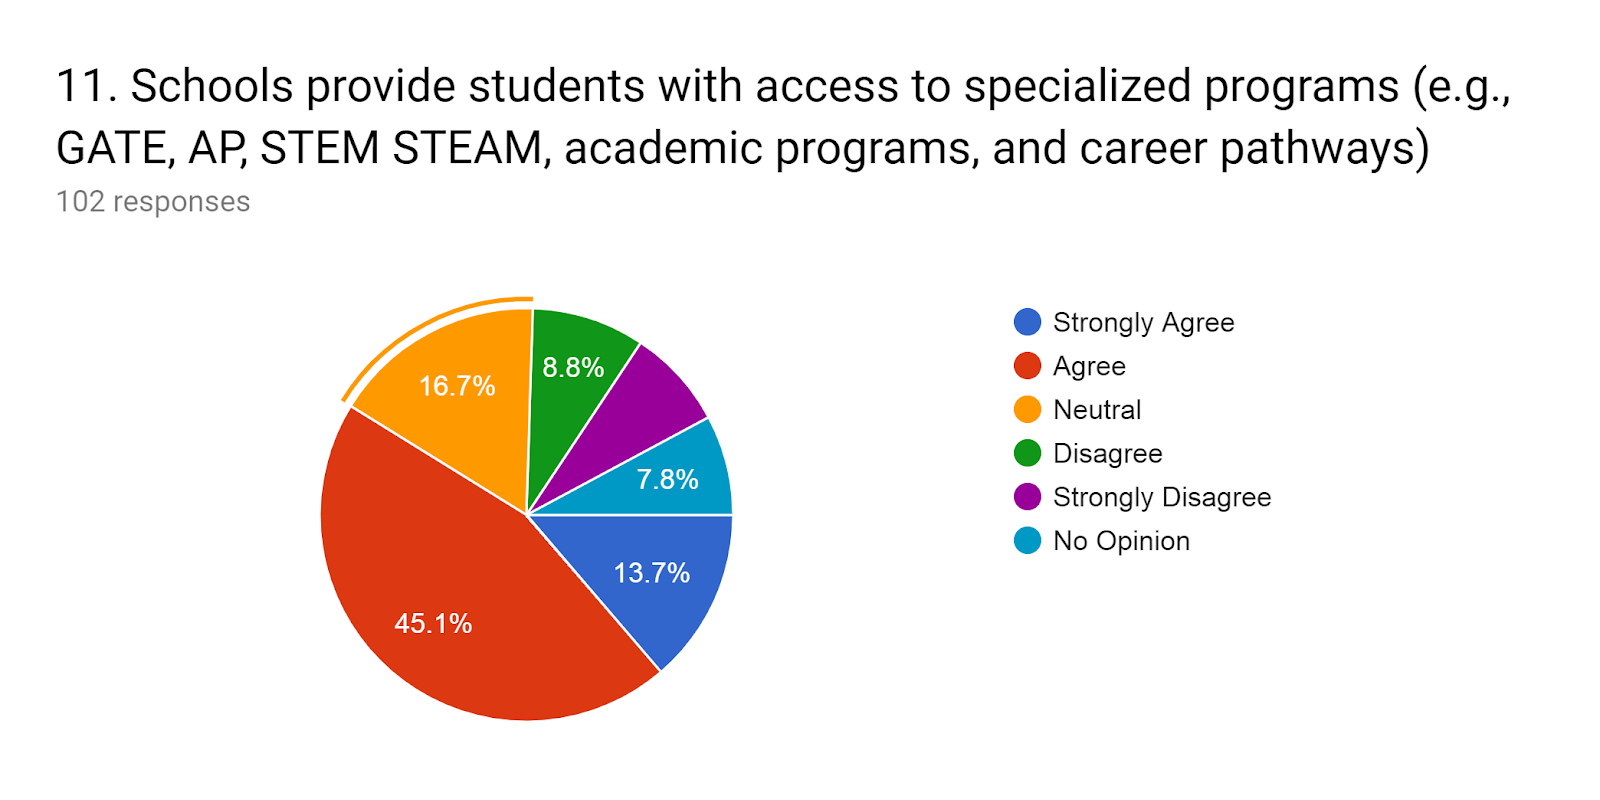 Forms response chart. Question title: 11.Schools provide students with access to specialized programs (e.g., GATE, AP, STEM STEAM, academic programs, and career pathways). Number of responses: 102 responses.